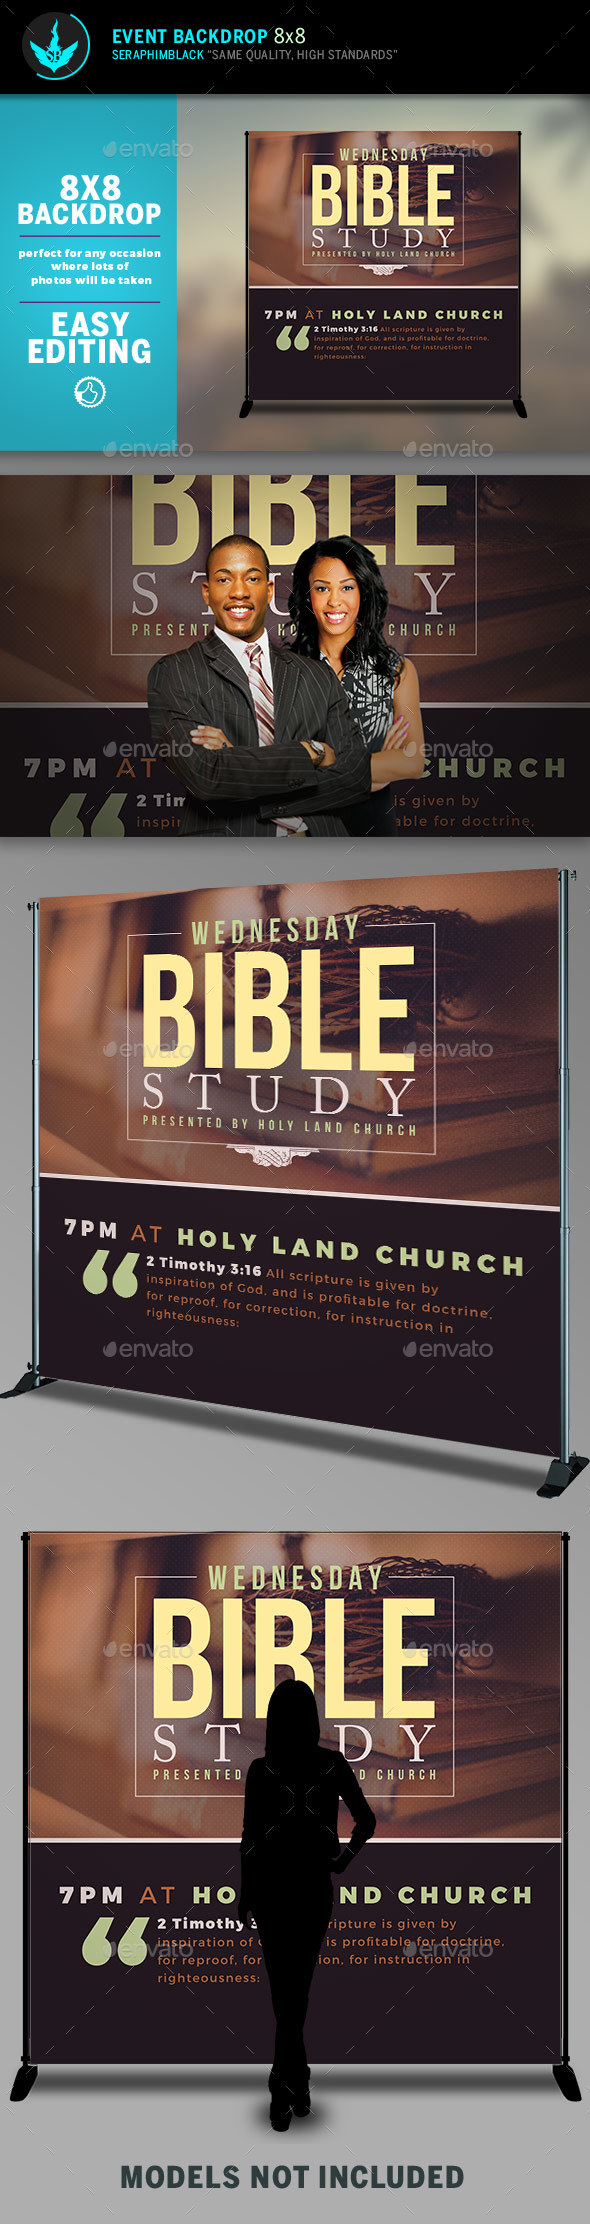 GraphicRiver Bible Study 8x8 Event Backdrop Template 20610198